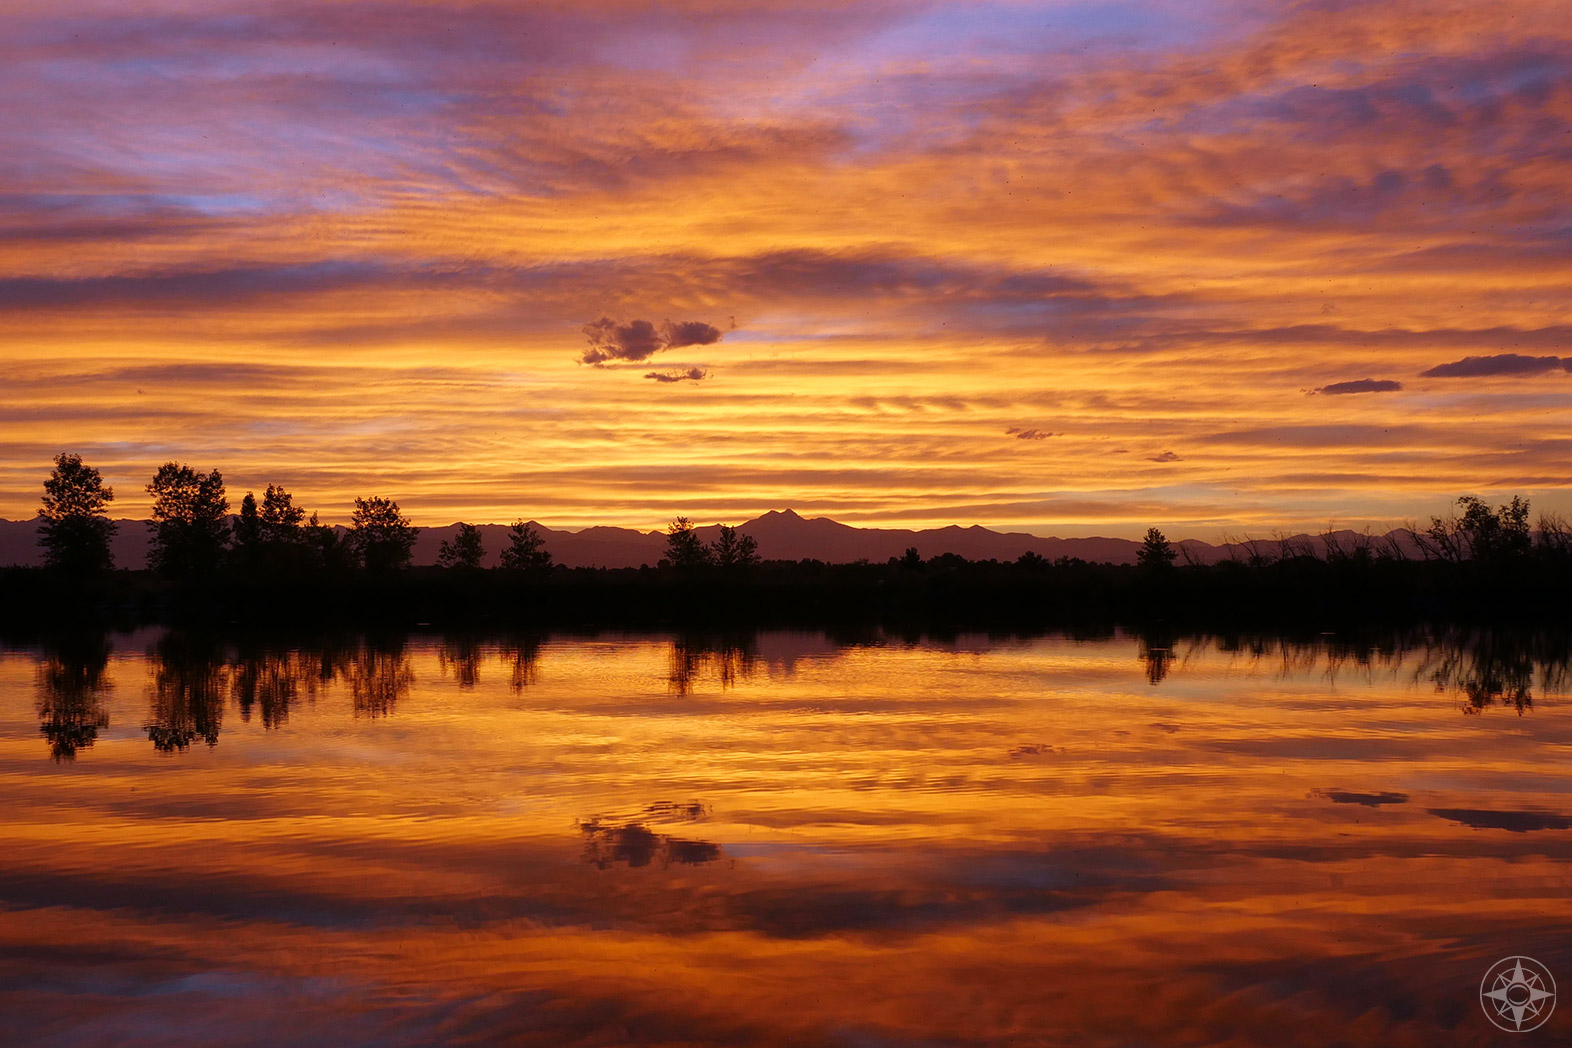 Rocky Mountain Sunset Reflection in Coot Pond in St. Vrain State Park, Colorado